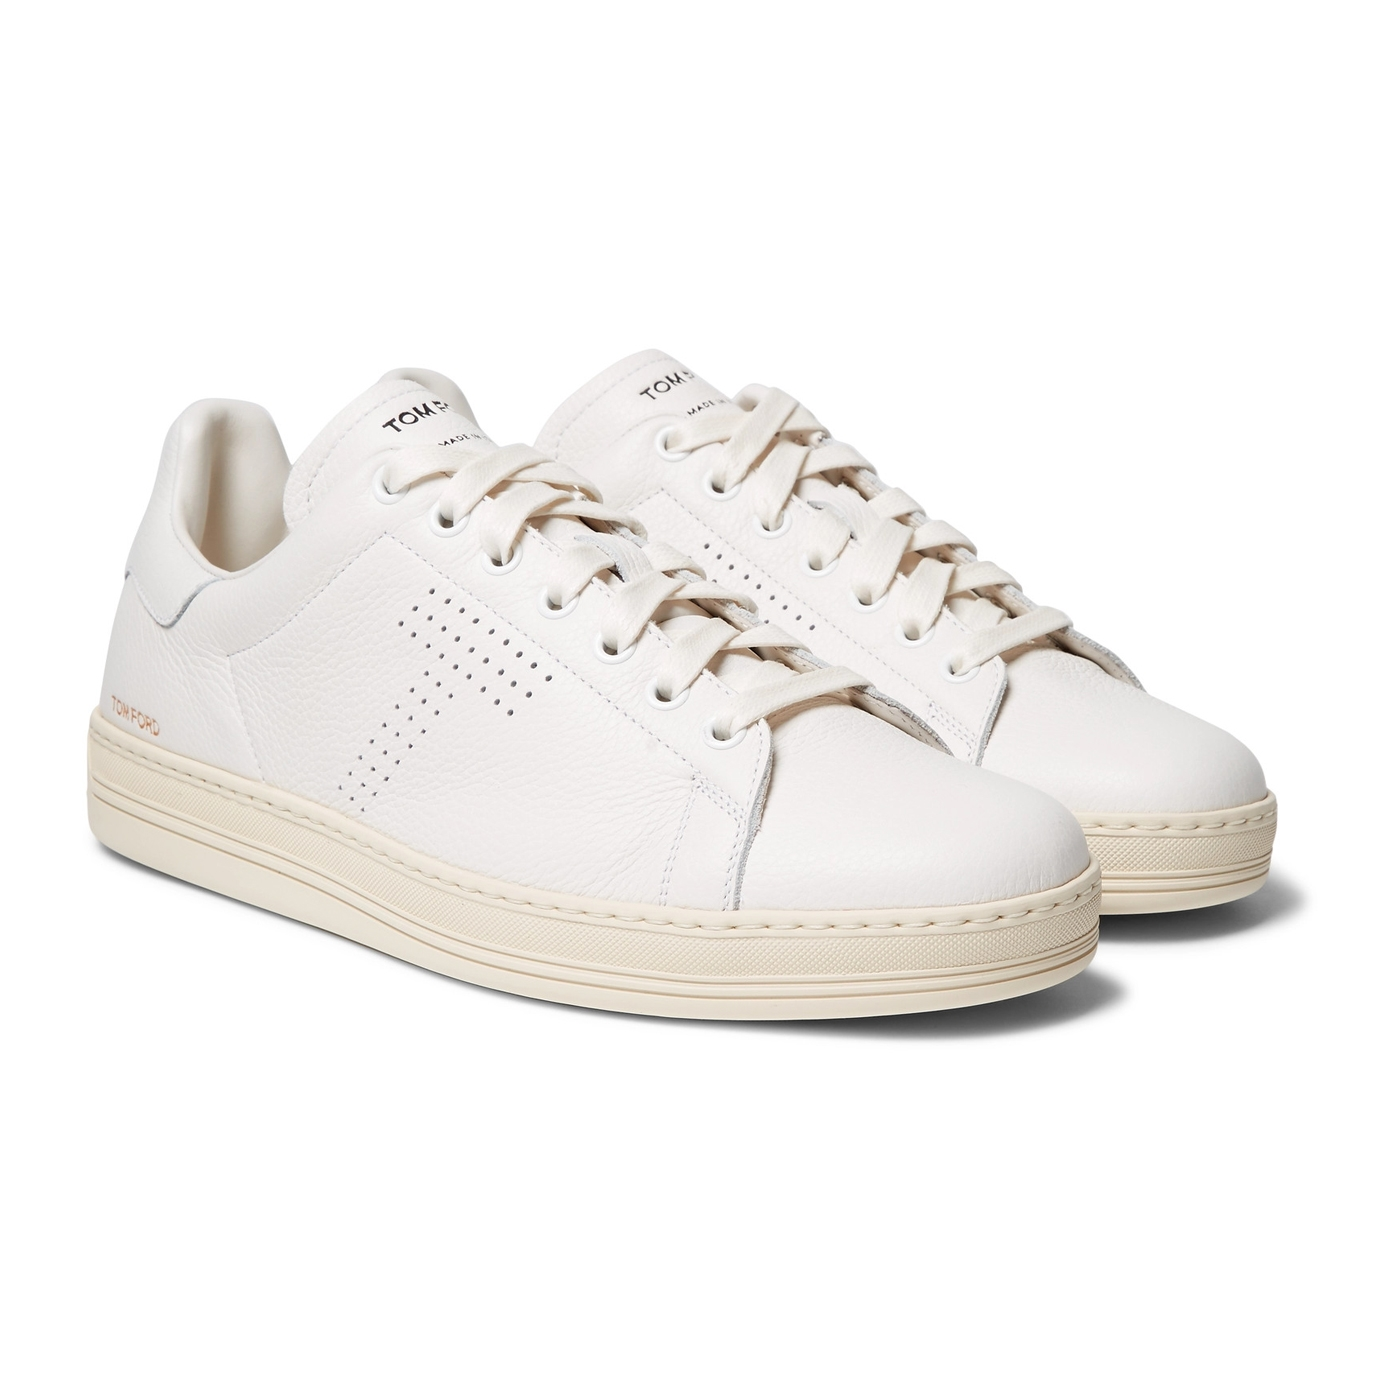 Style Mr Porter Sneakers Cuir Blanc Tom Ford